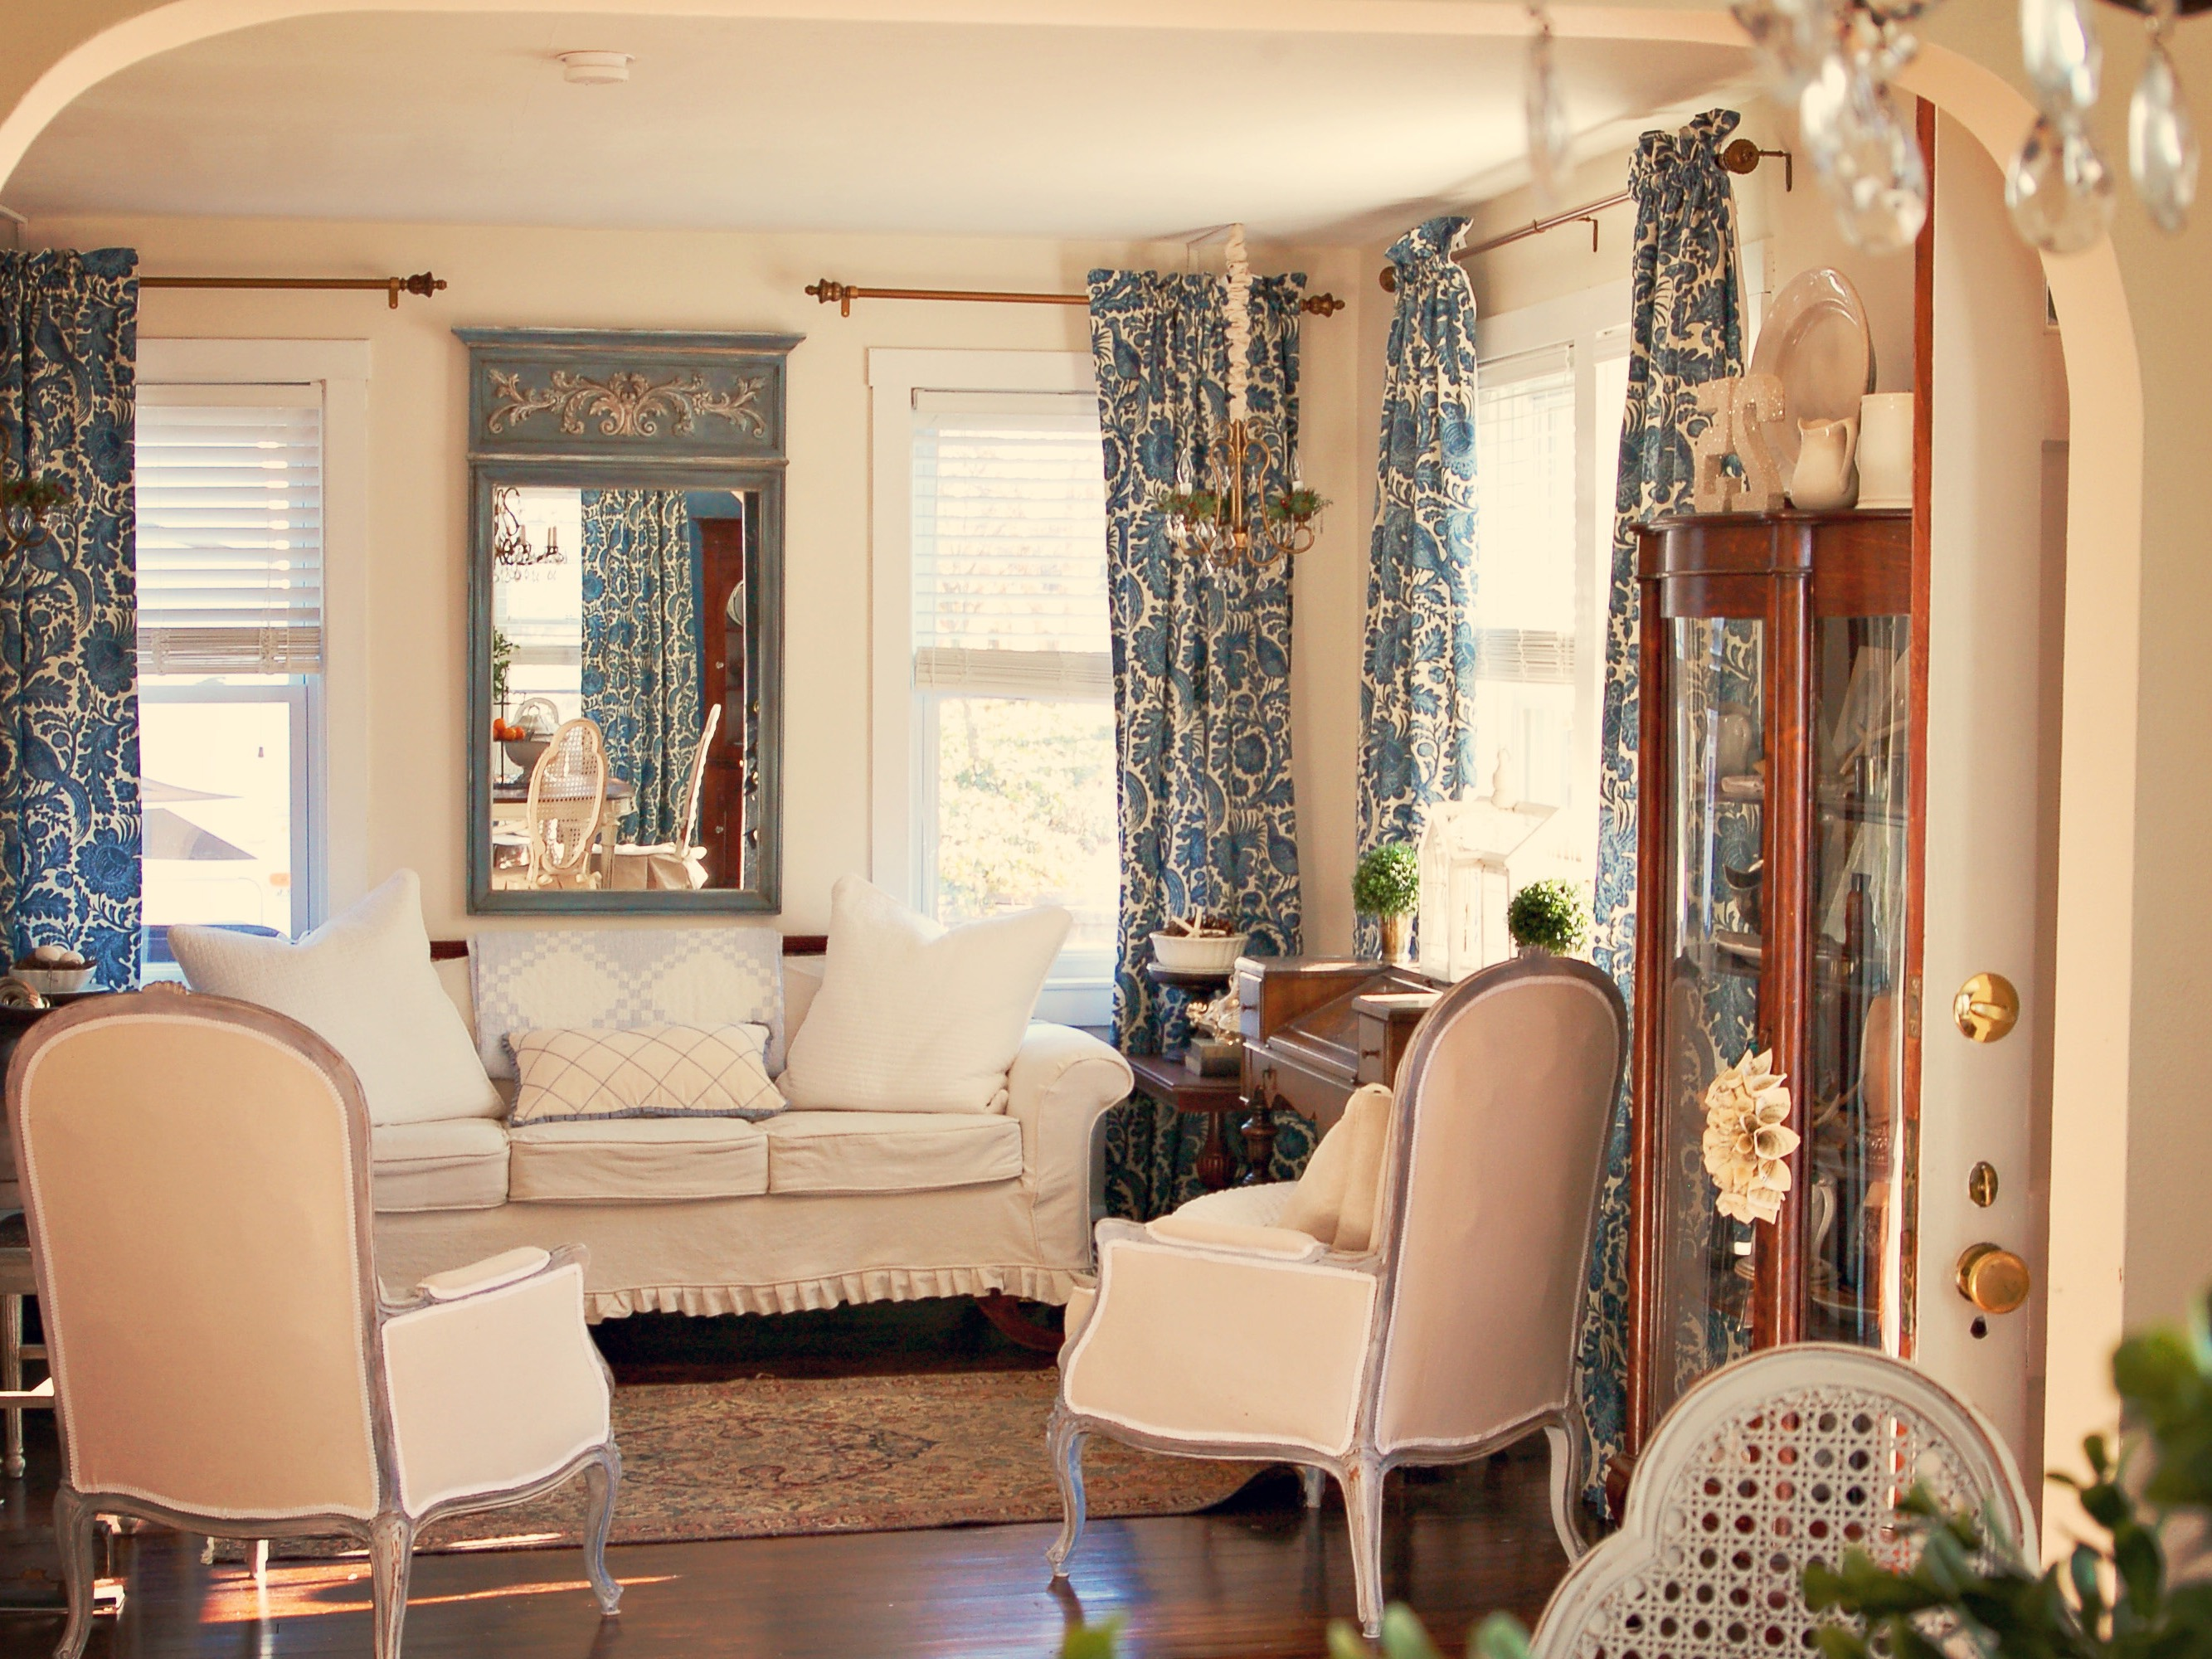 Blue And Cream French Country Living Room (View 2 of 18)